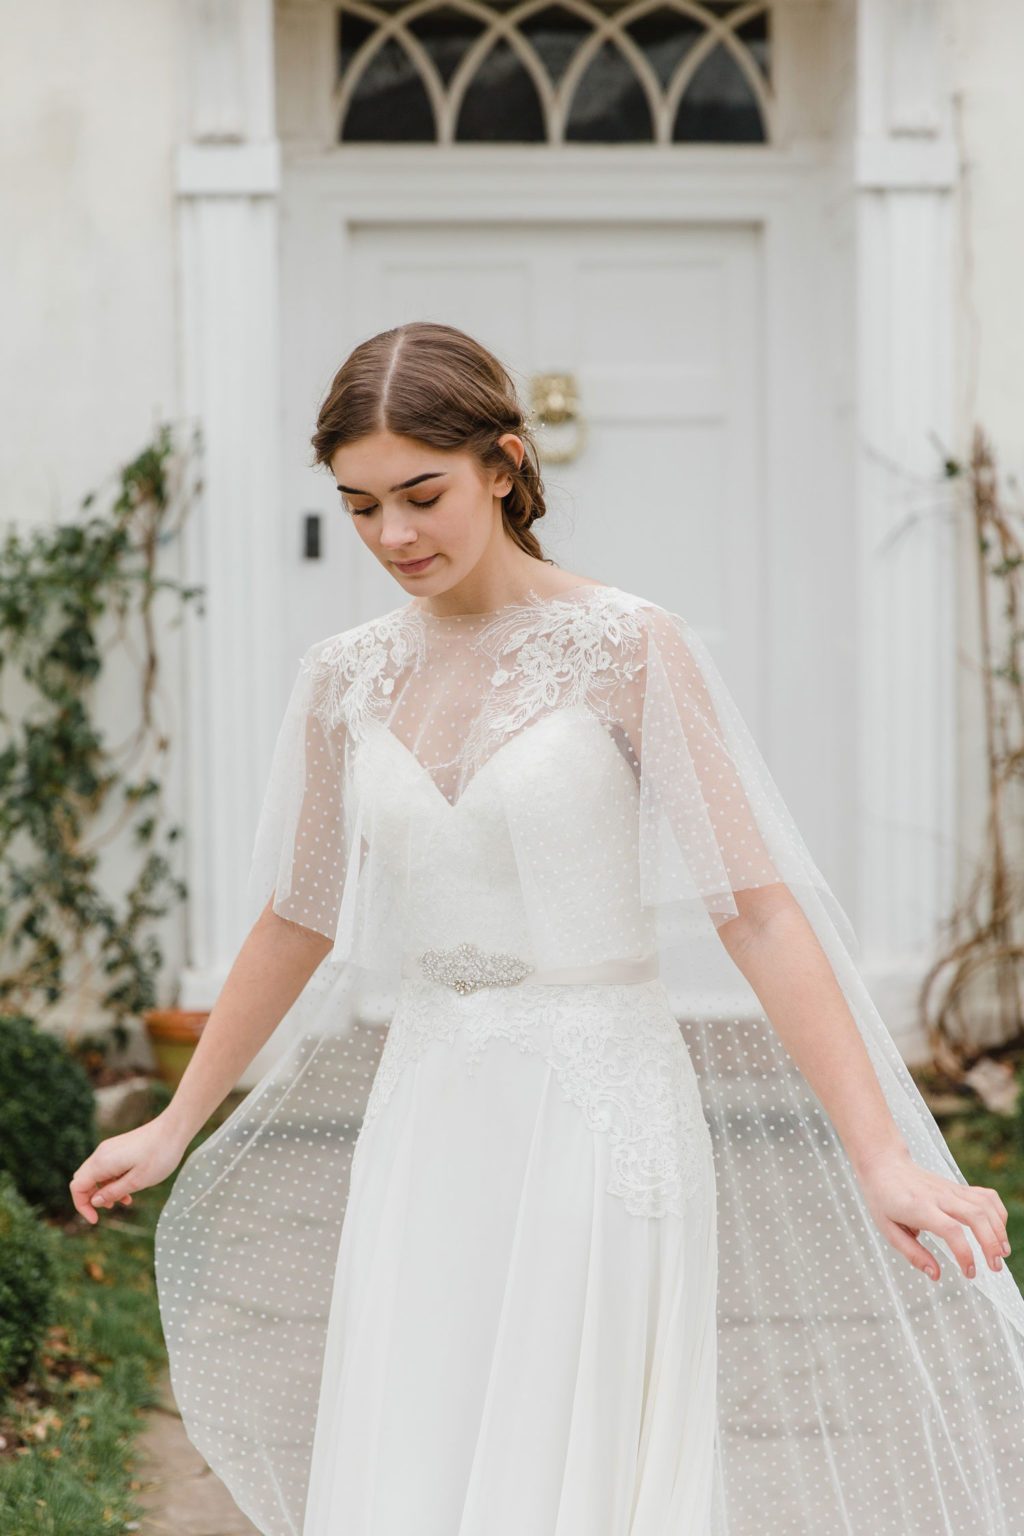 Fairy Garden Wedding With Coloured Wedding Dresses And Ethereal Vibes